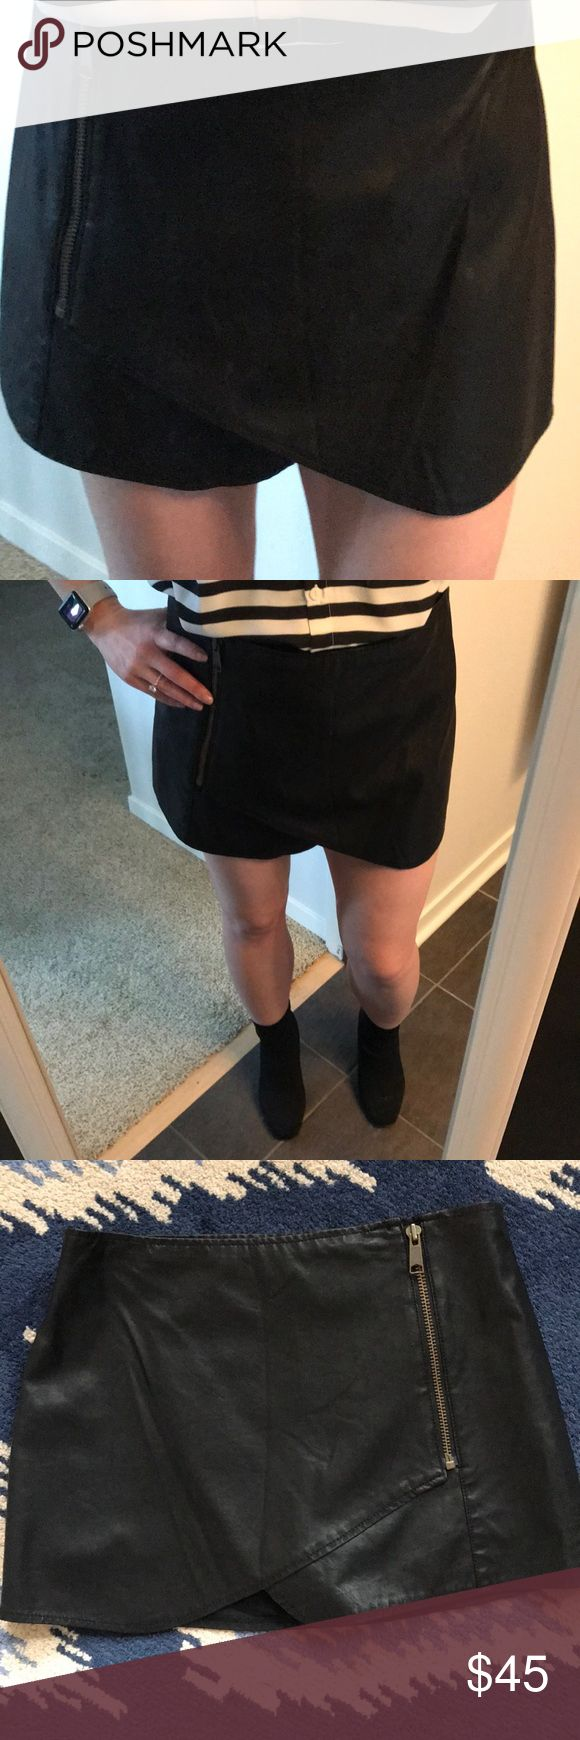 Free People leather mini skirt Built-in stretchy shorts for secured fit and feel. Front has cross over design with zipper on left hip. This skirt looks really cute with sock booties (as pictured) or OTK boots. Machine wash cold. Do not dry clean. Free People Skirts Mini